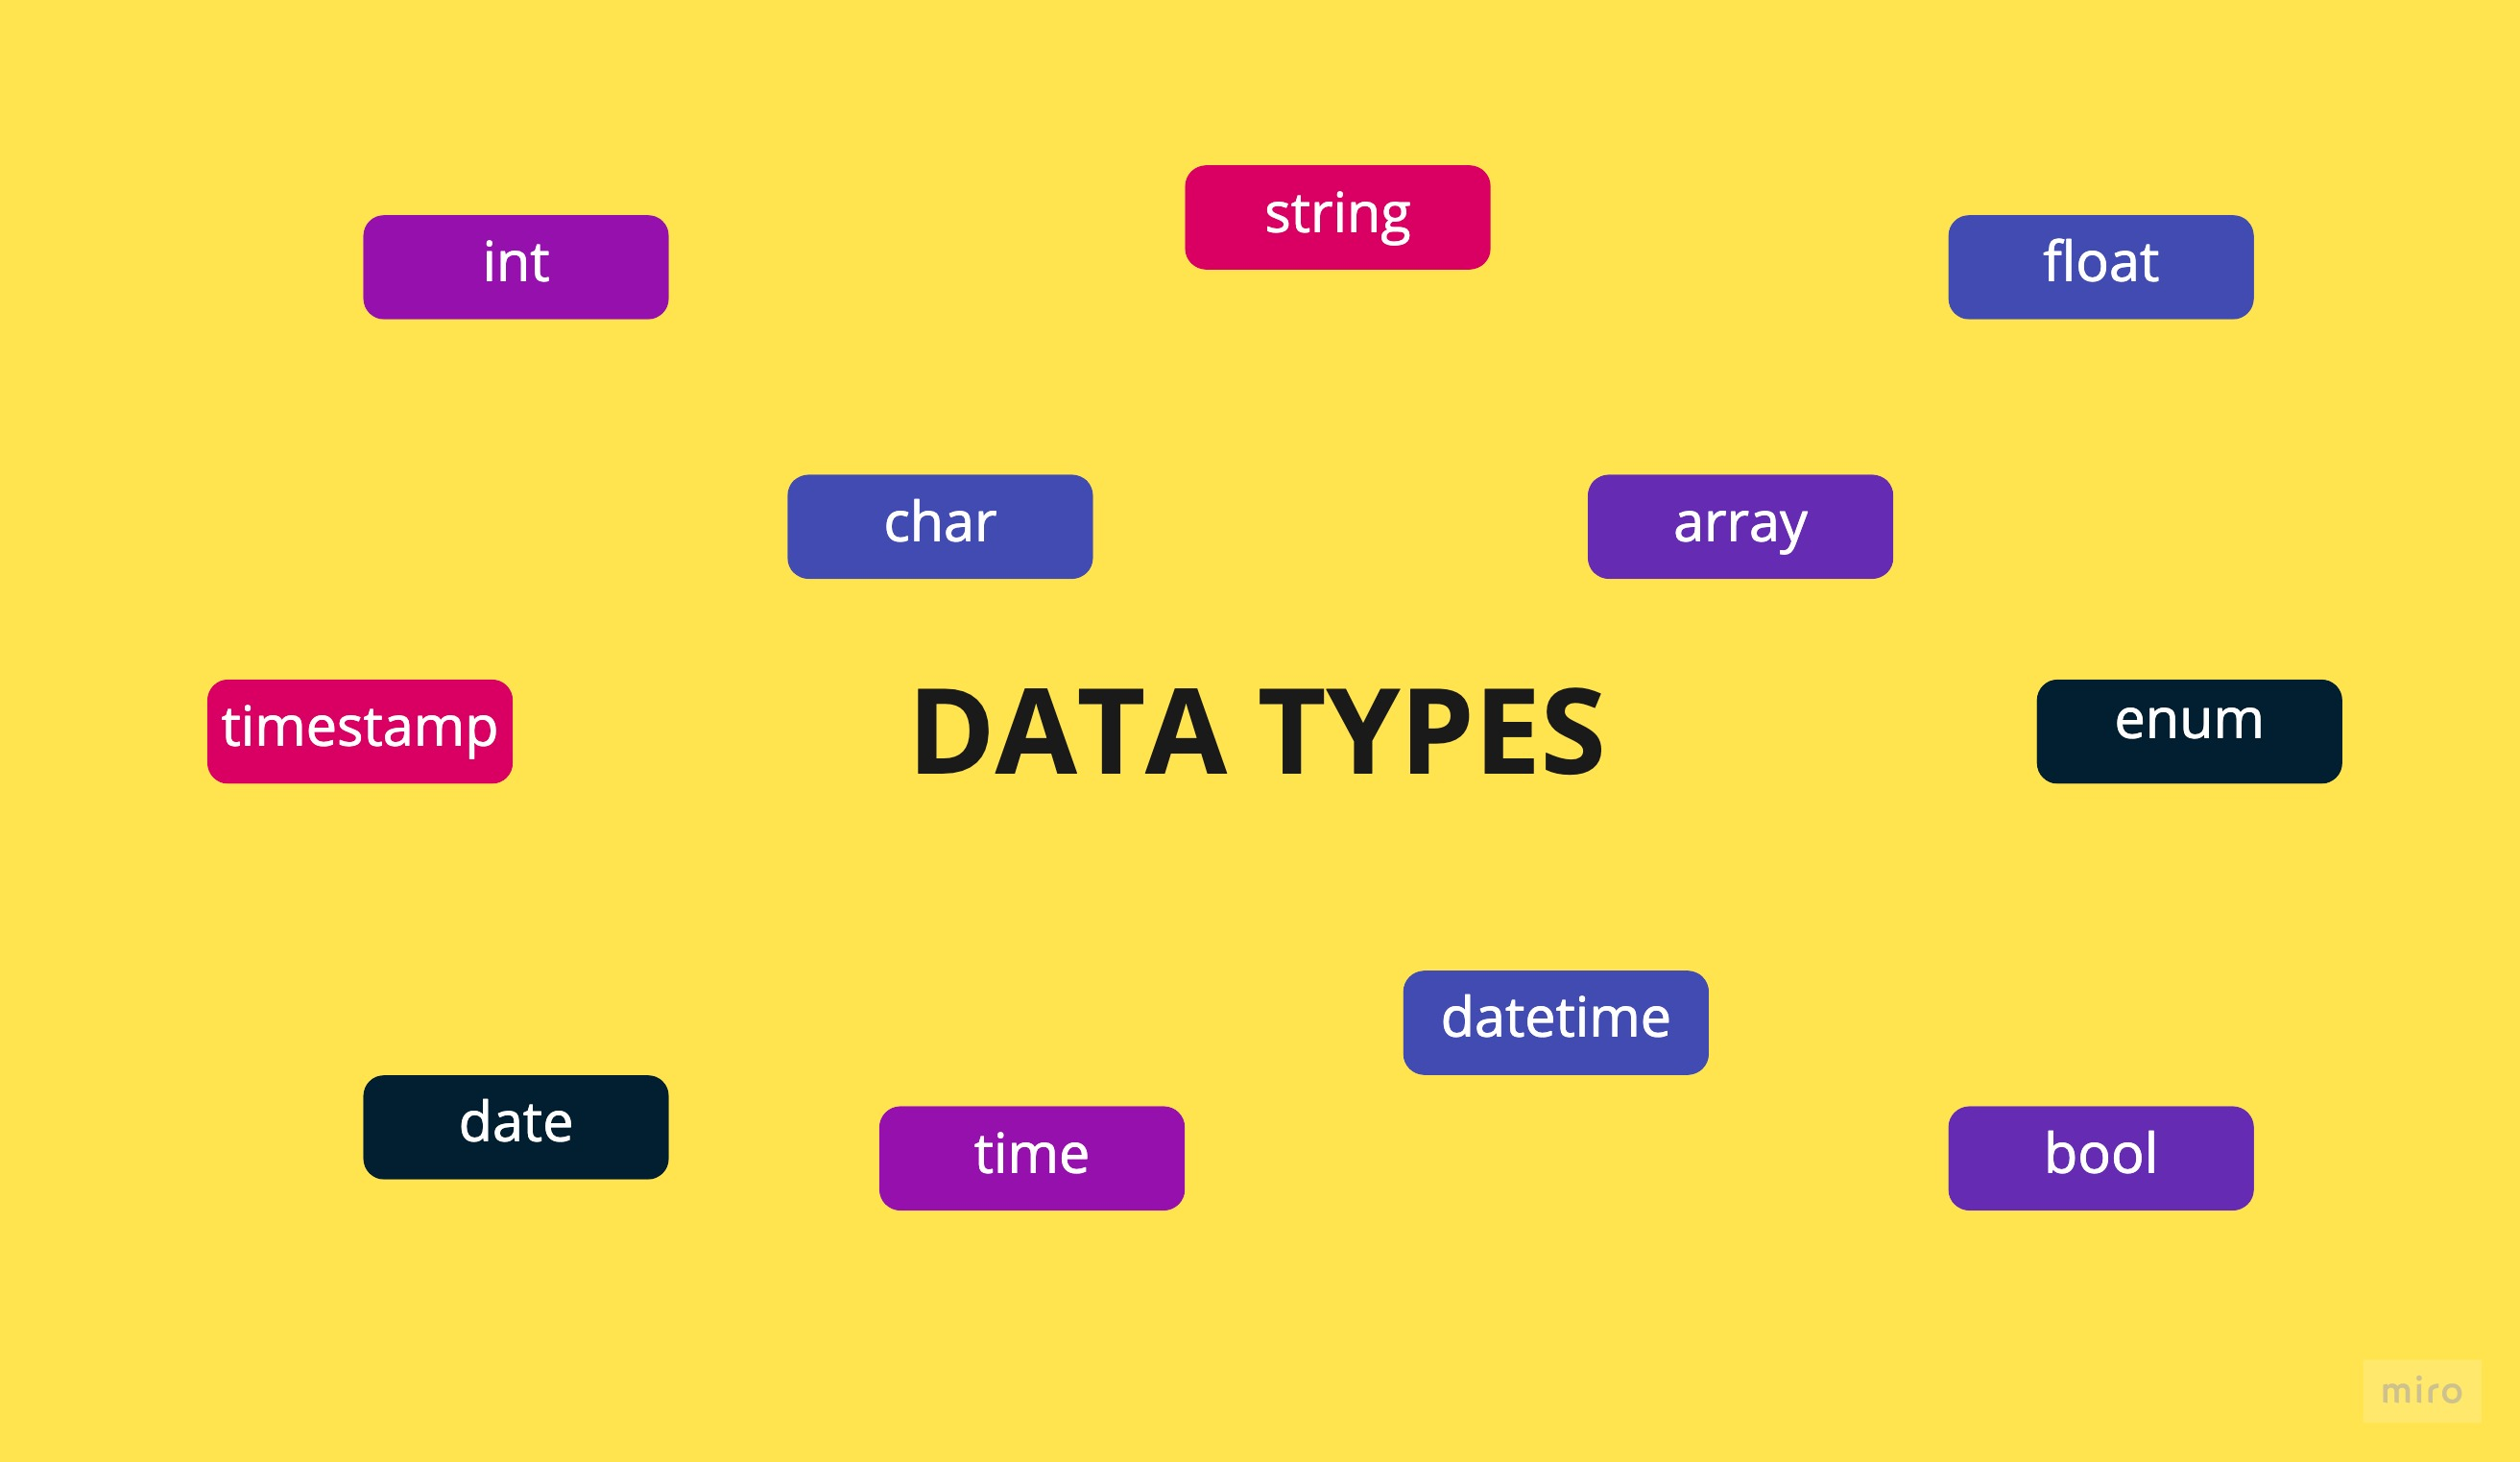 These are the various data types